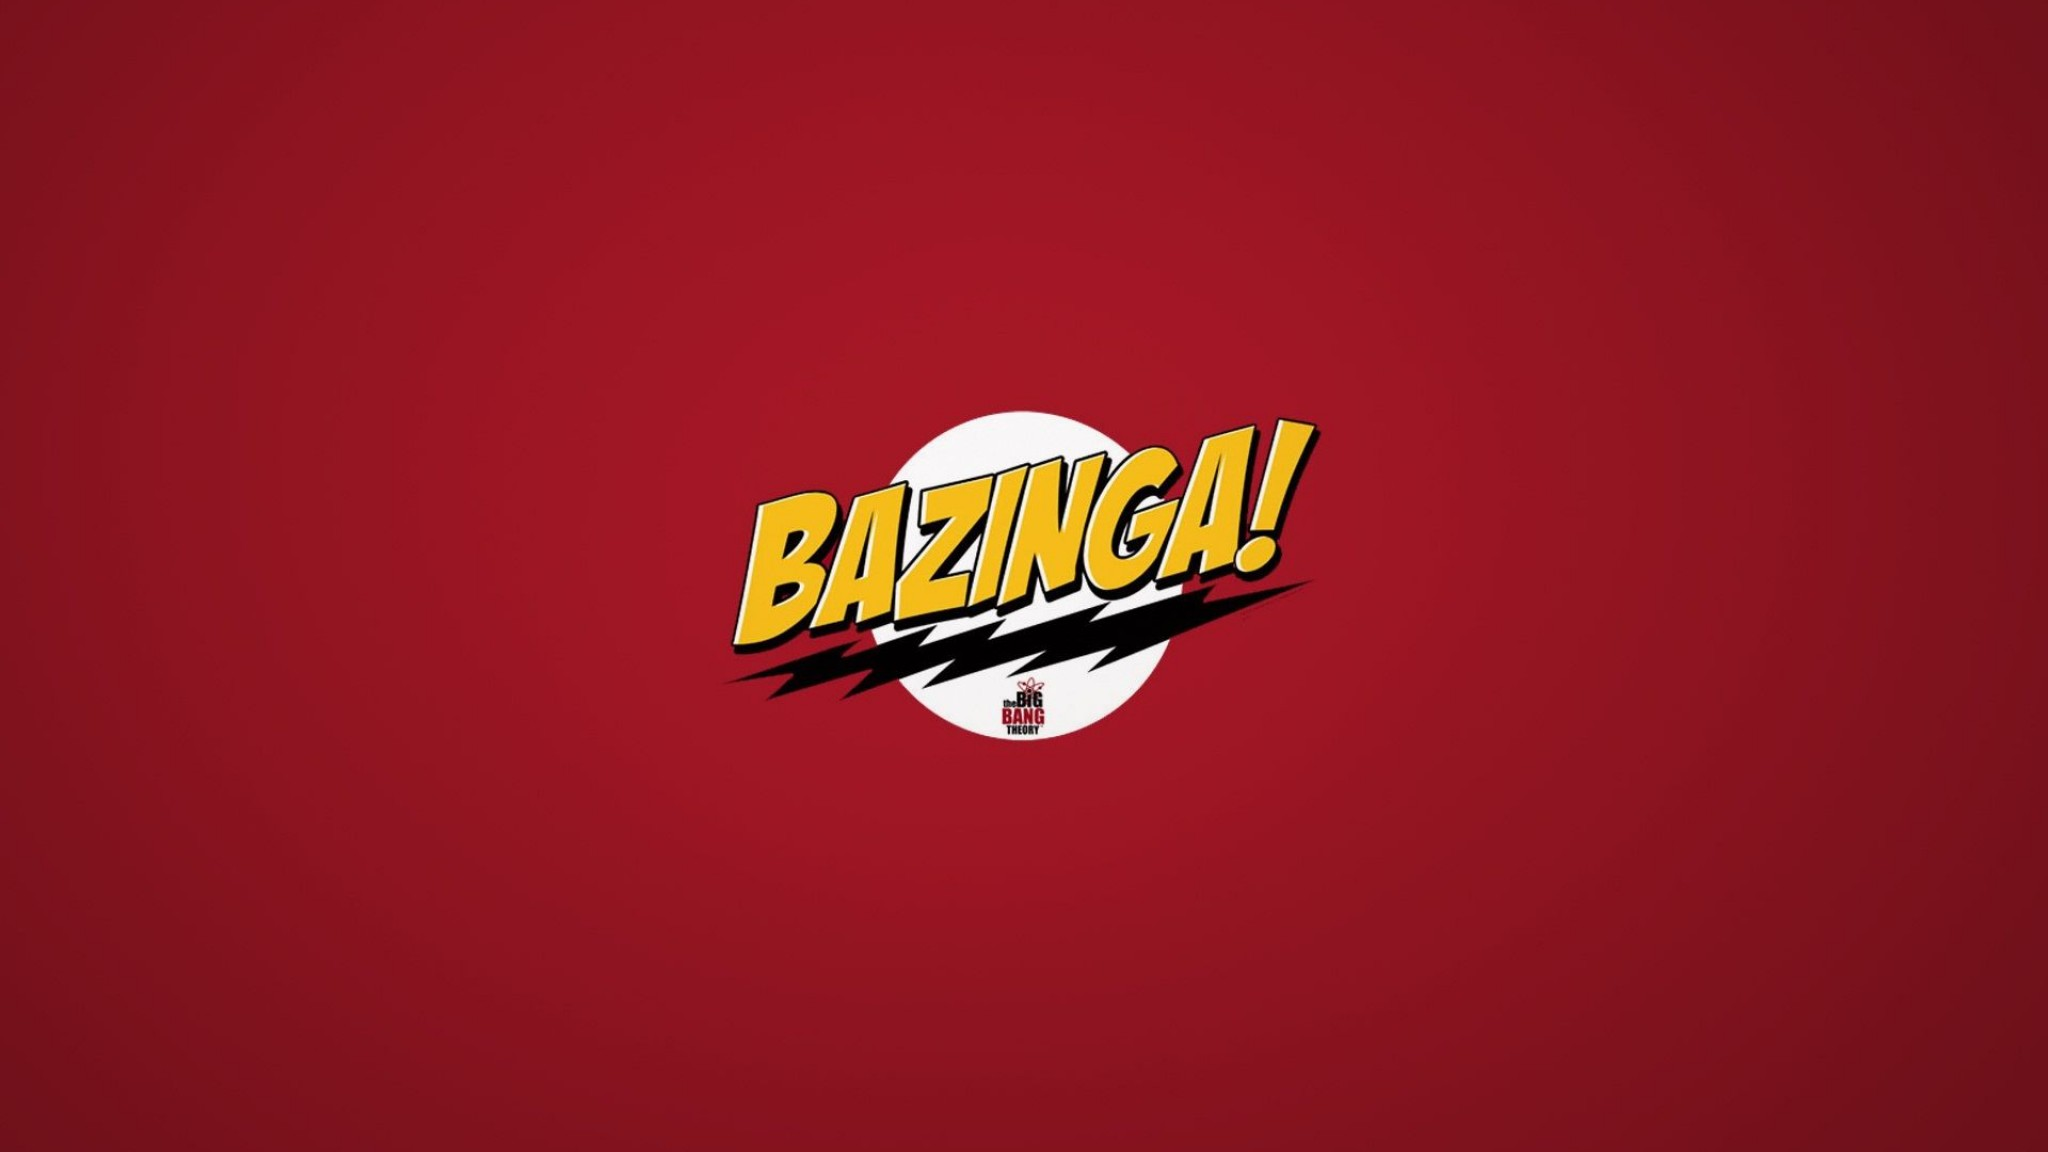 the big bang theory images bazinga! hd wallpaper and background